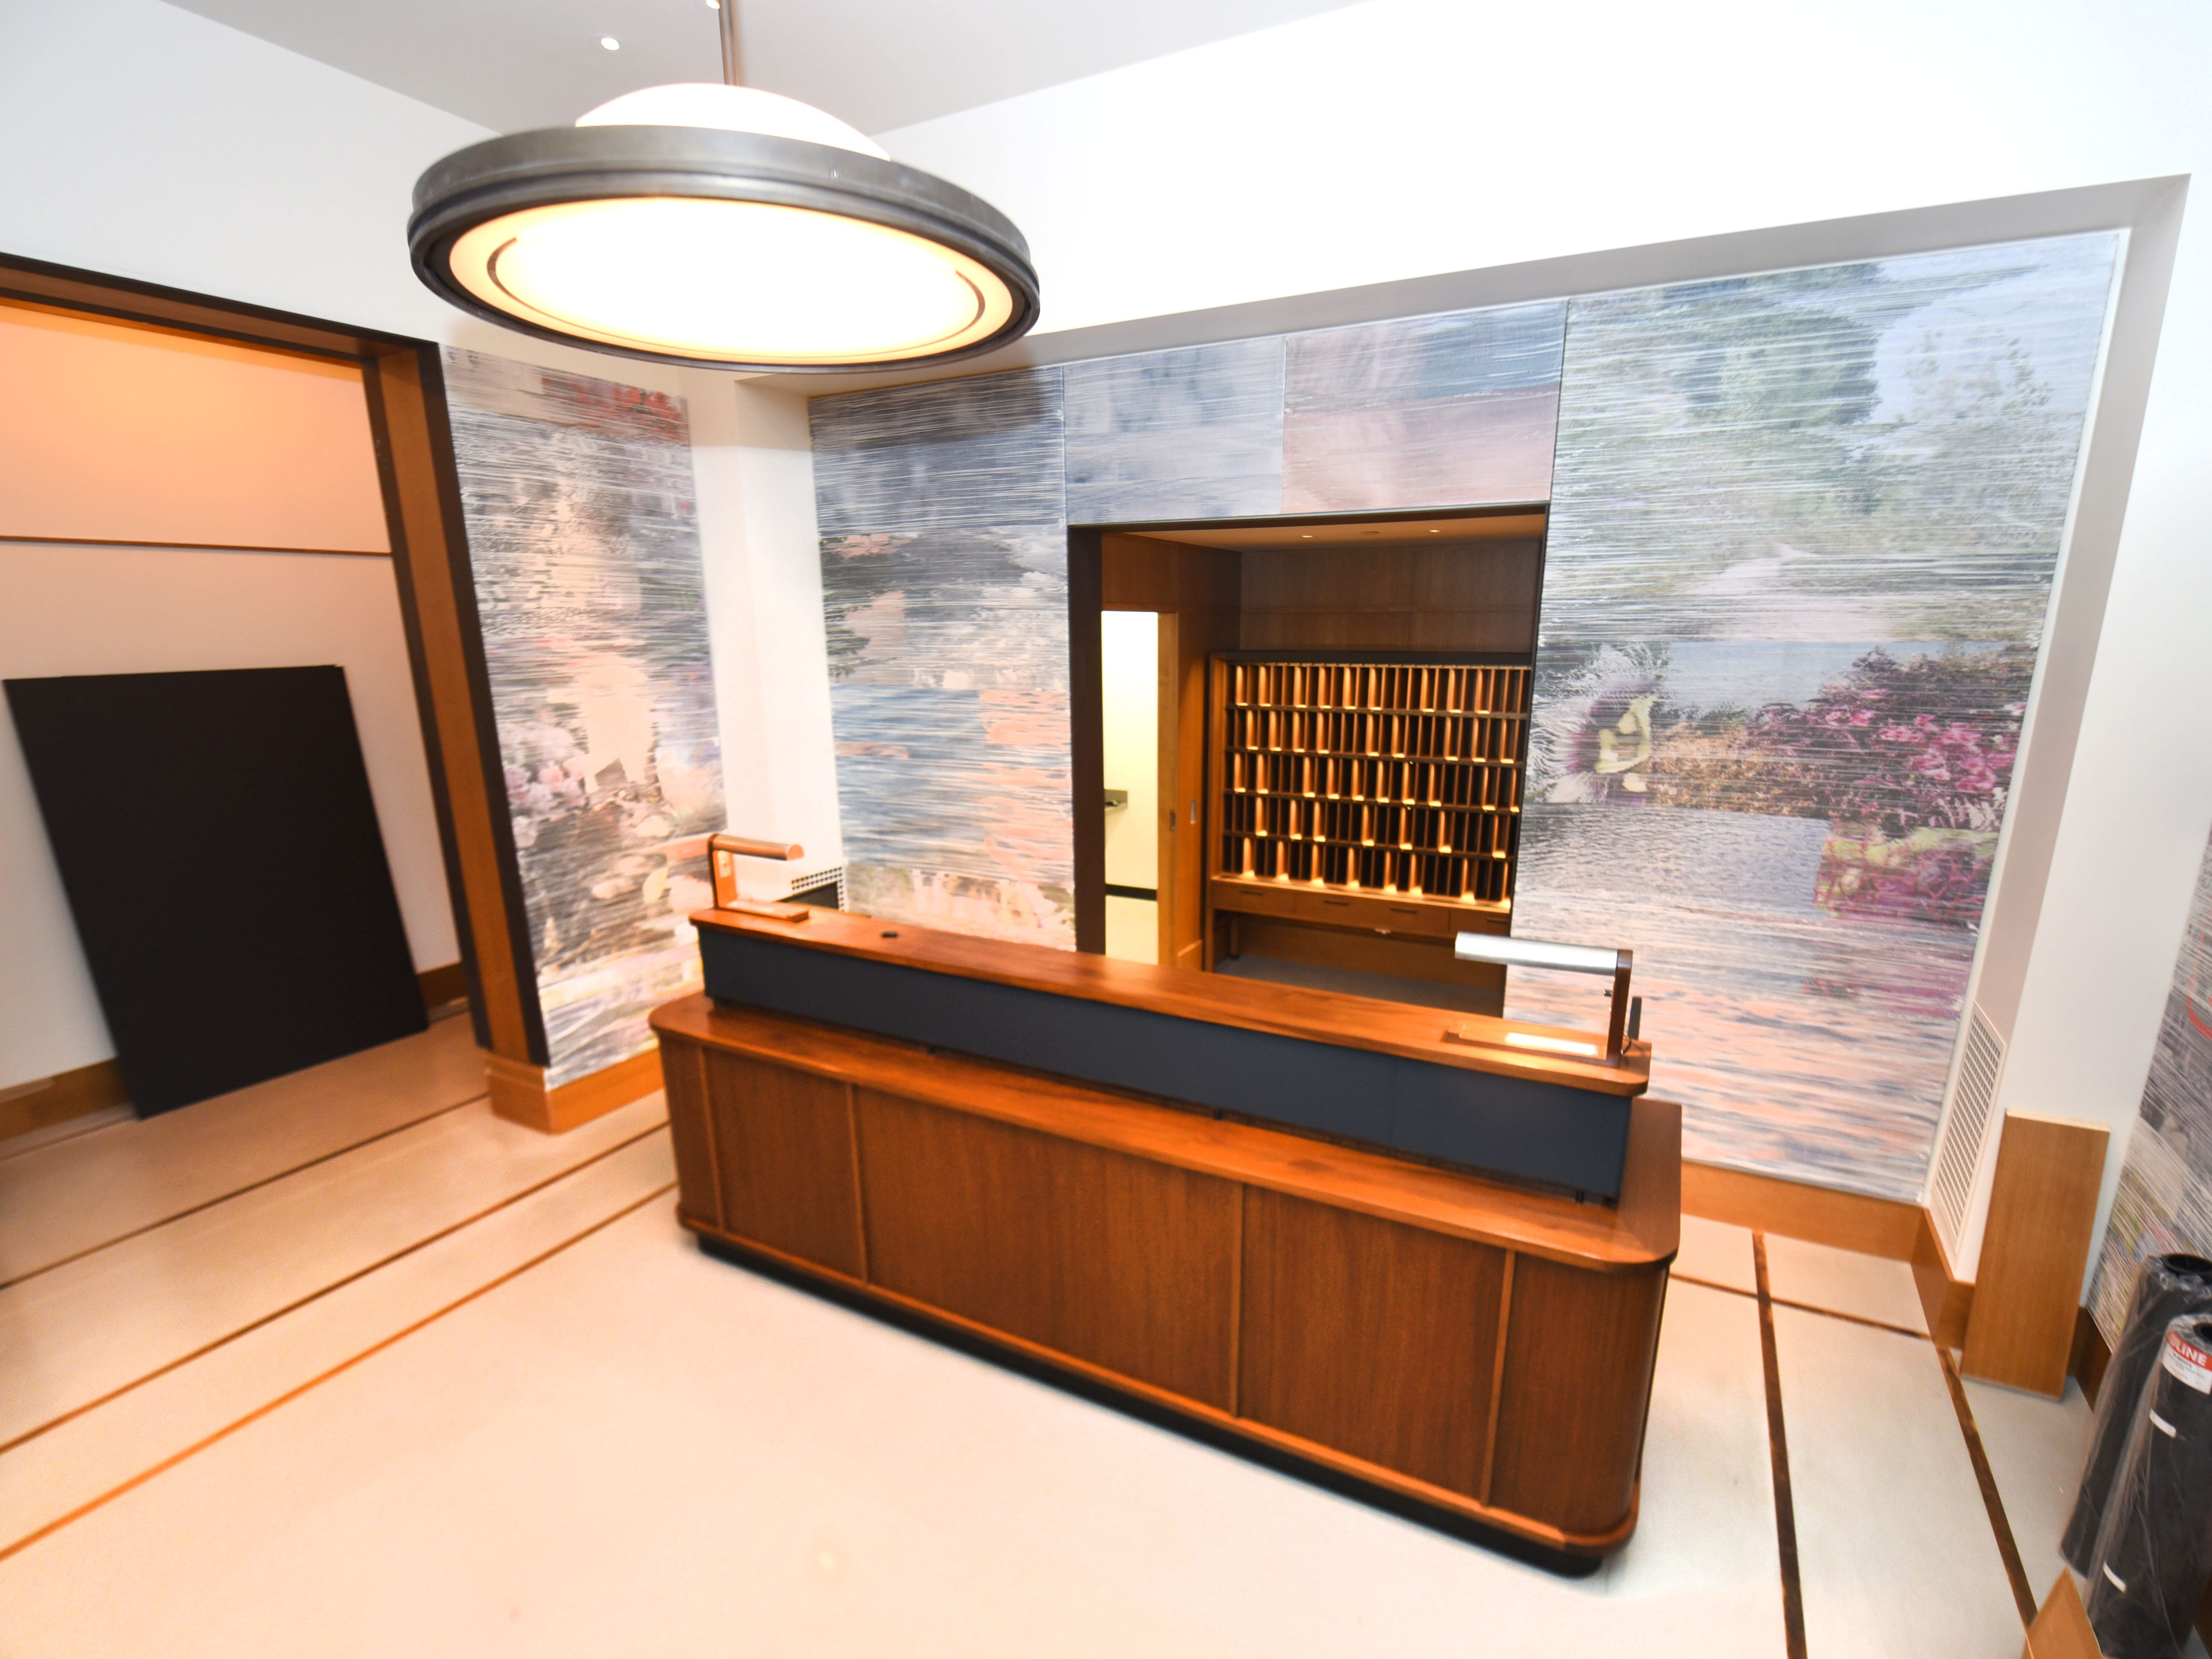 Guests will check in here, at the hotel's reception desk.